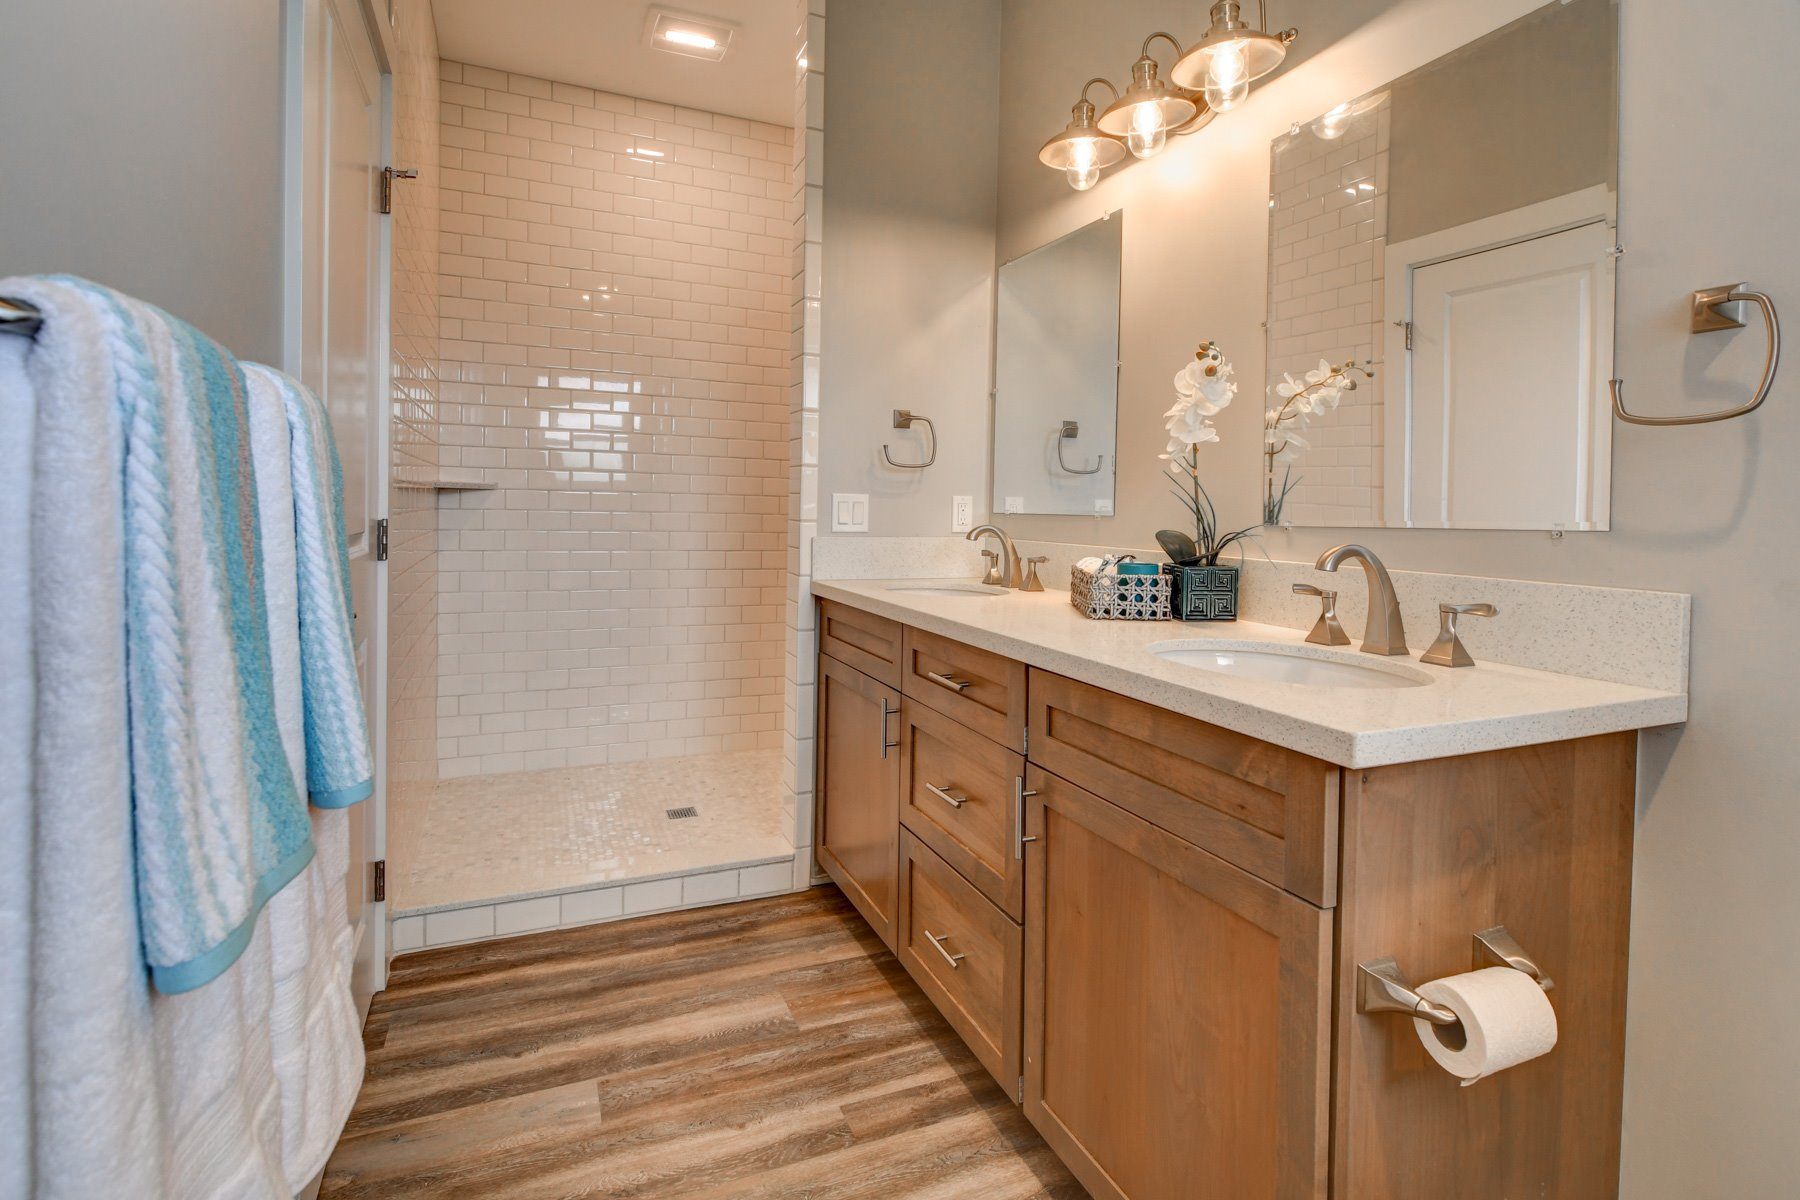 Double sinks master bath and oversized, floor to ceiling tiled walk-in shower.